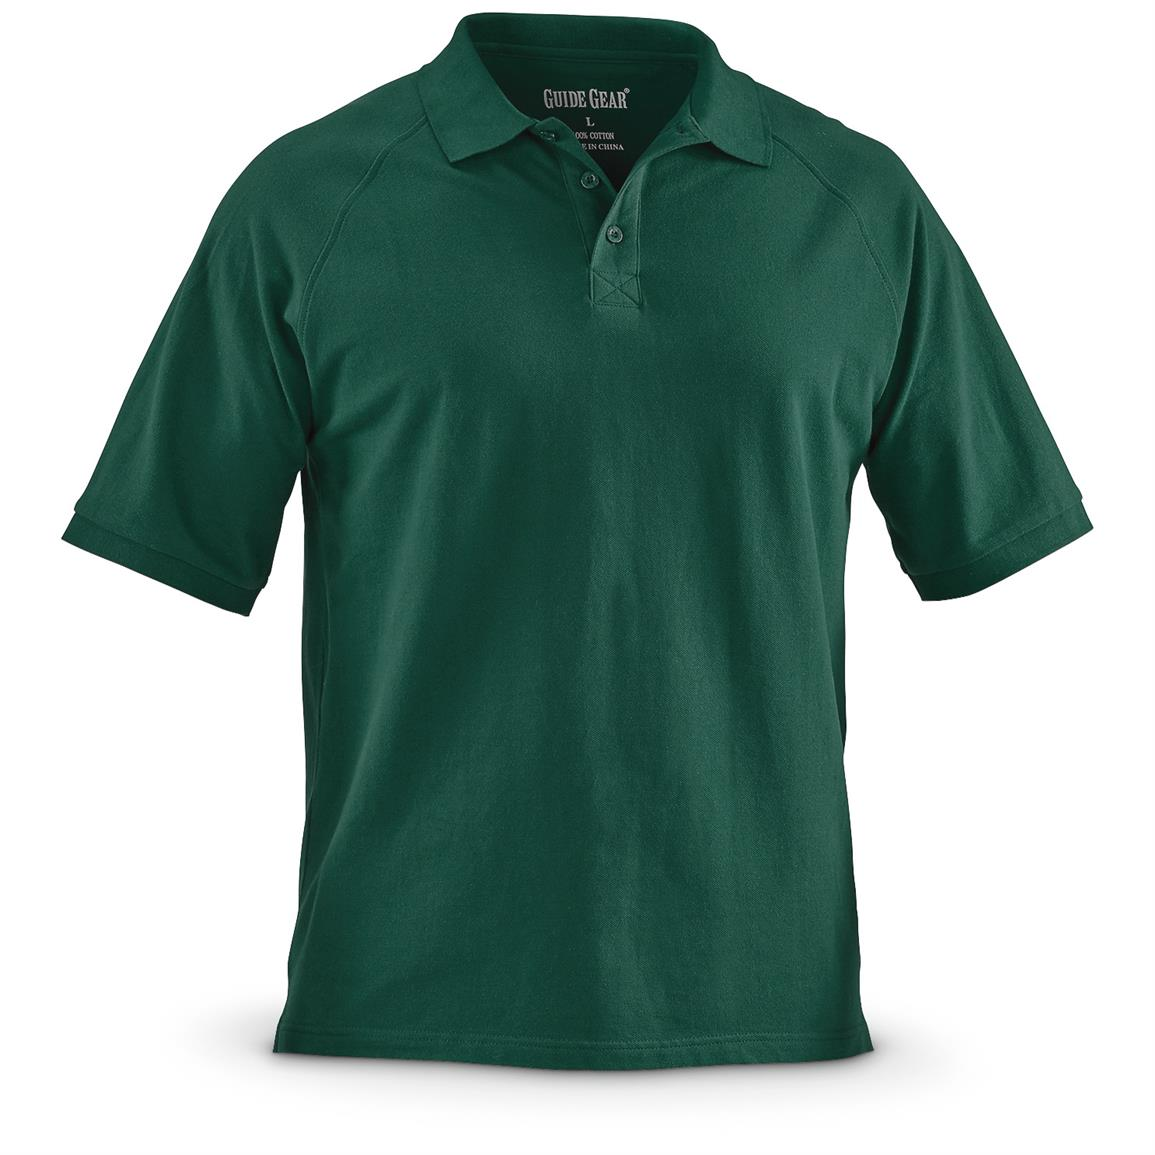 Guide Gear Men's Cotton Polo Shirt, Green